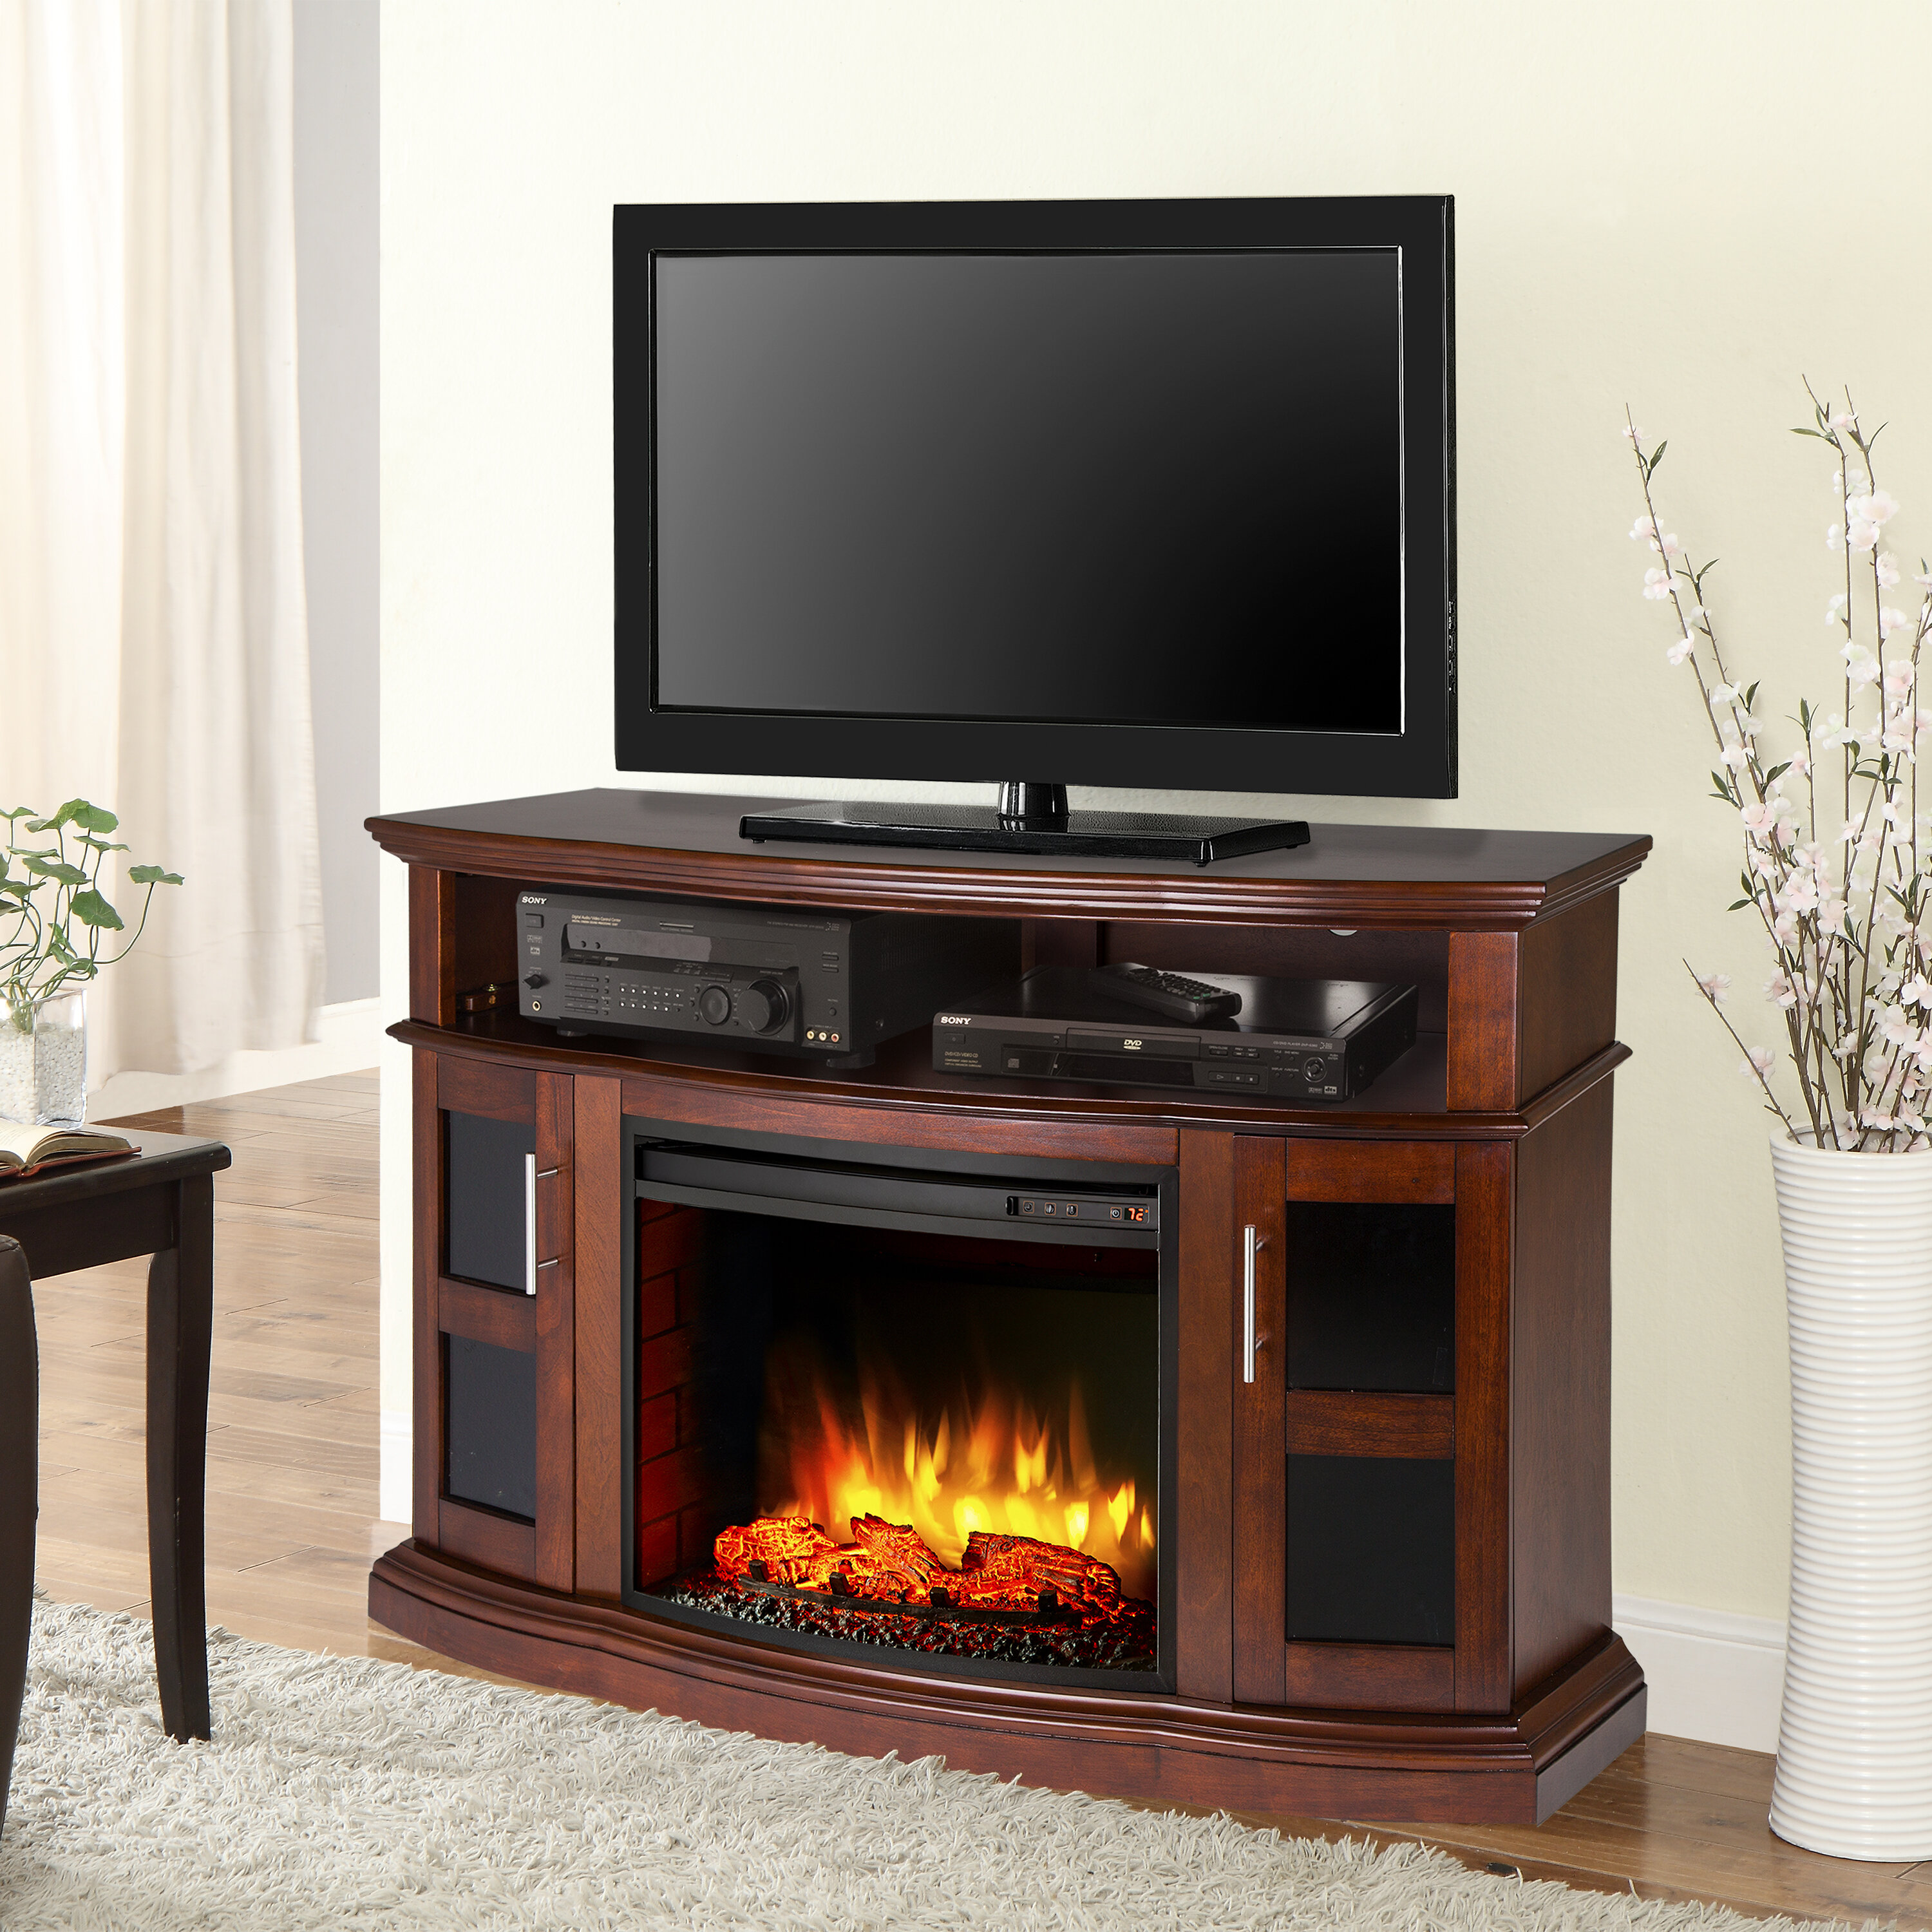 Red Barrel Studio Bouvier Tv Stand For Tvs Up To 60 With Electric